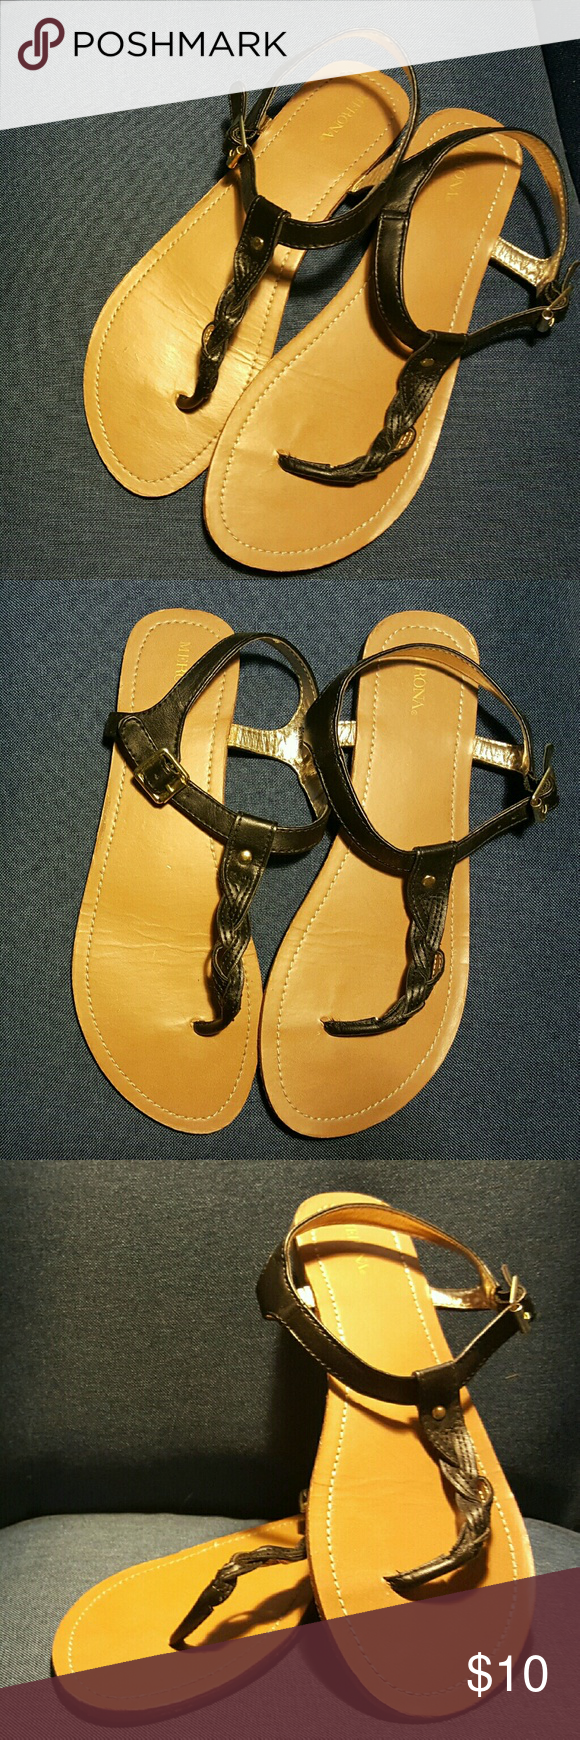 Cute strappy sandals Worn once. Size 11. I usually wear size 10 and they for perfectly. Merona Shoes Sandals